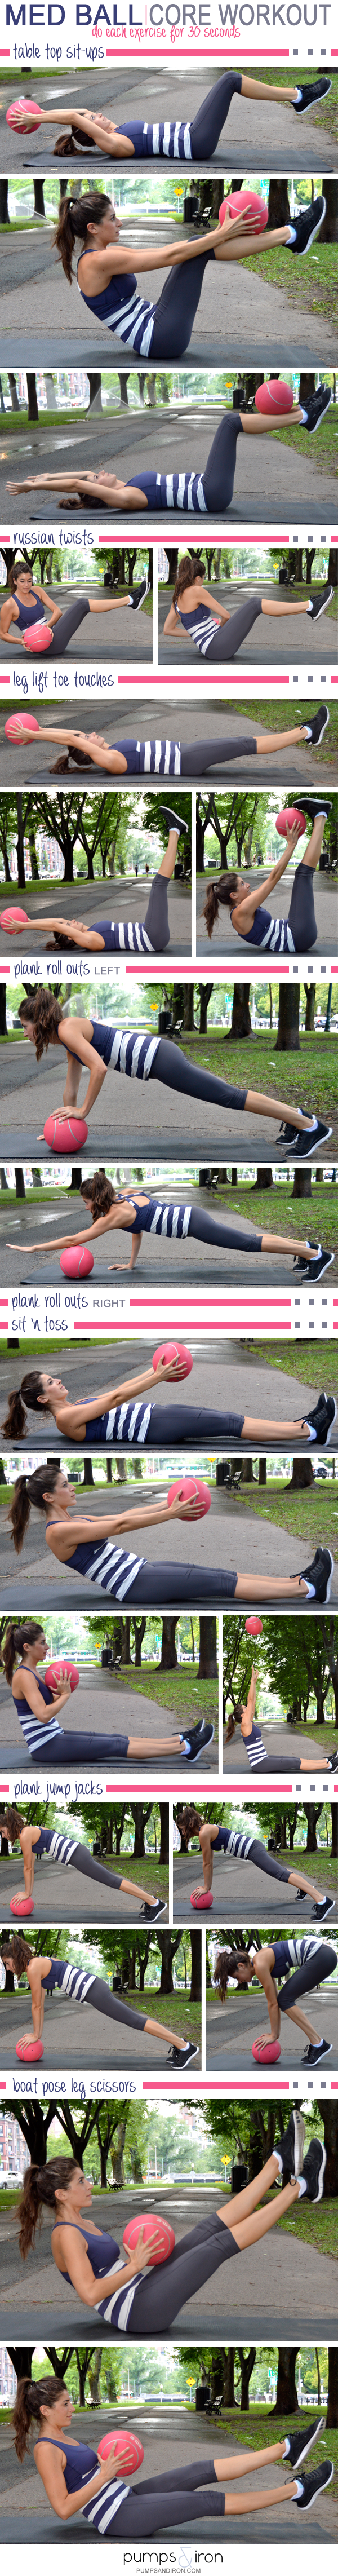 Med Ball Core Workout | Pumps & Iron